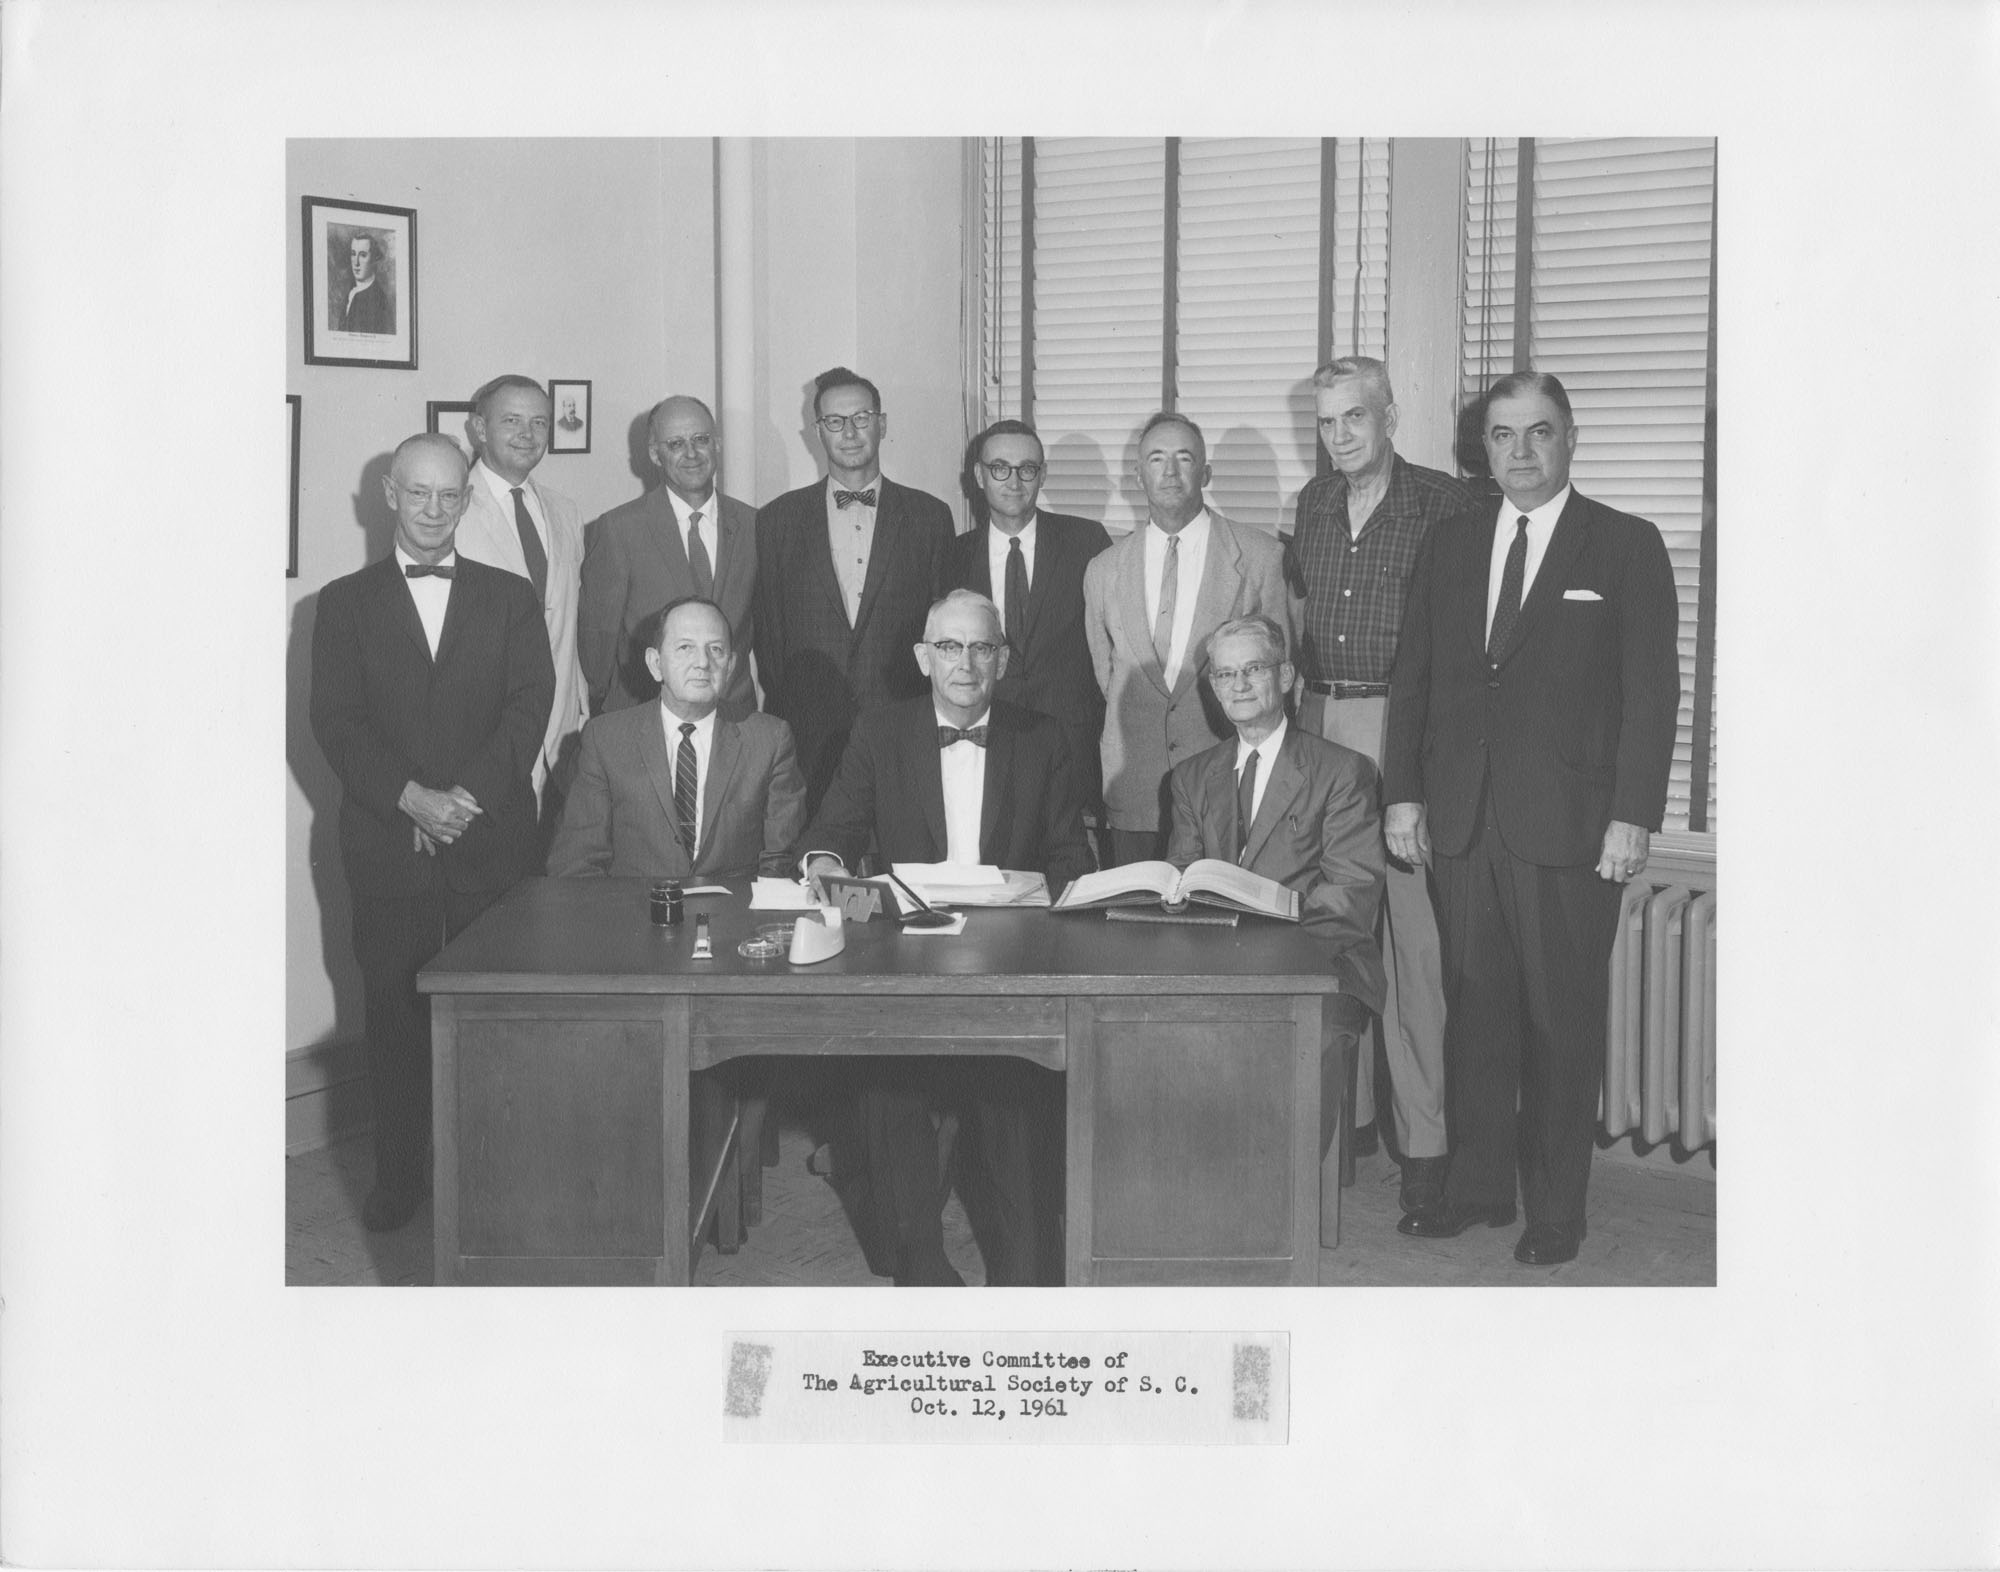 Executive Committee of the Agricultural Society of South Carolina, 1961